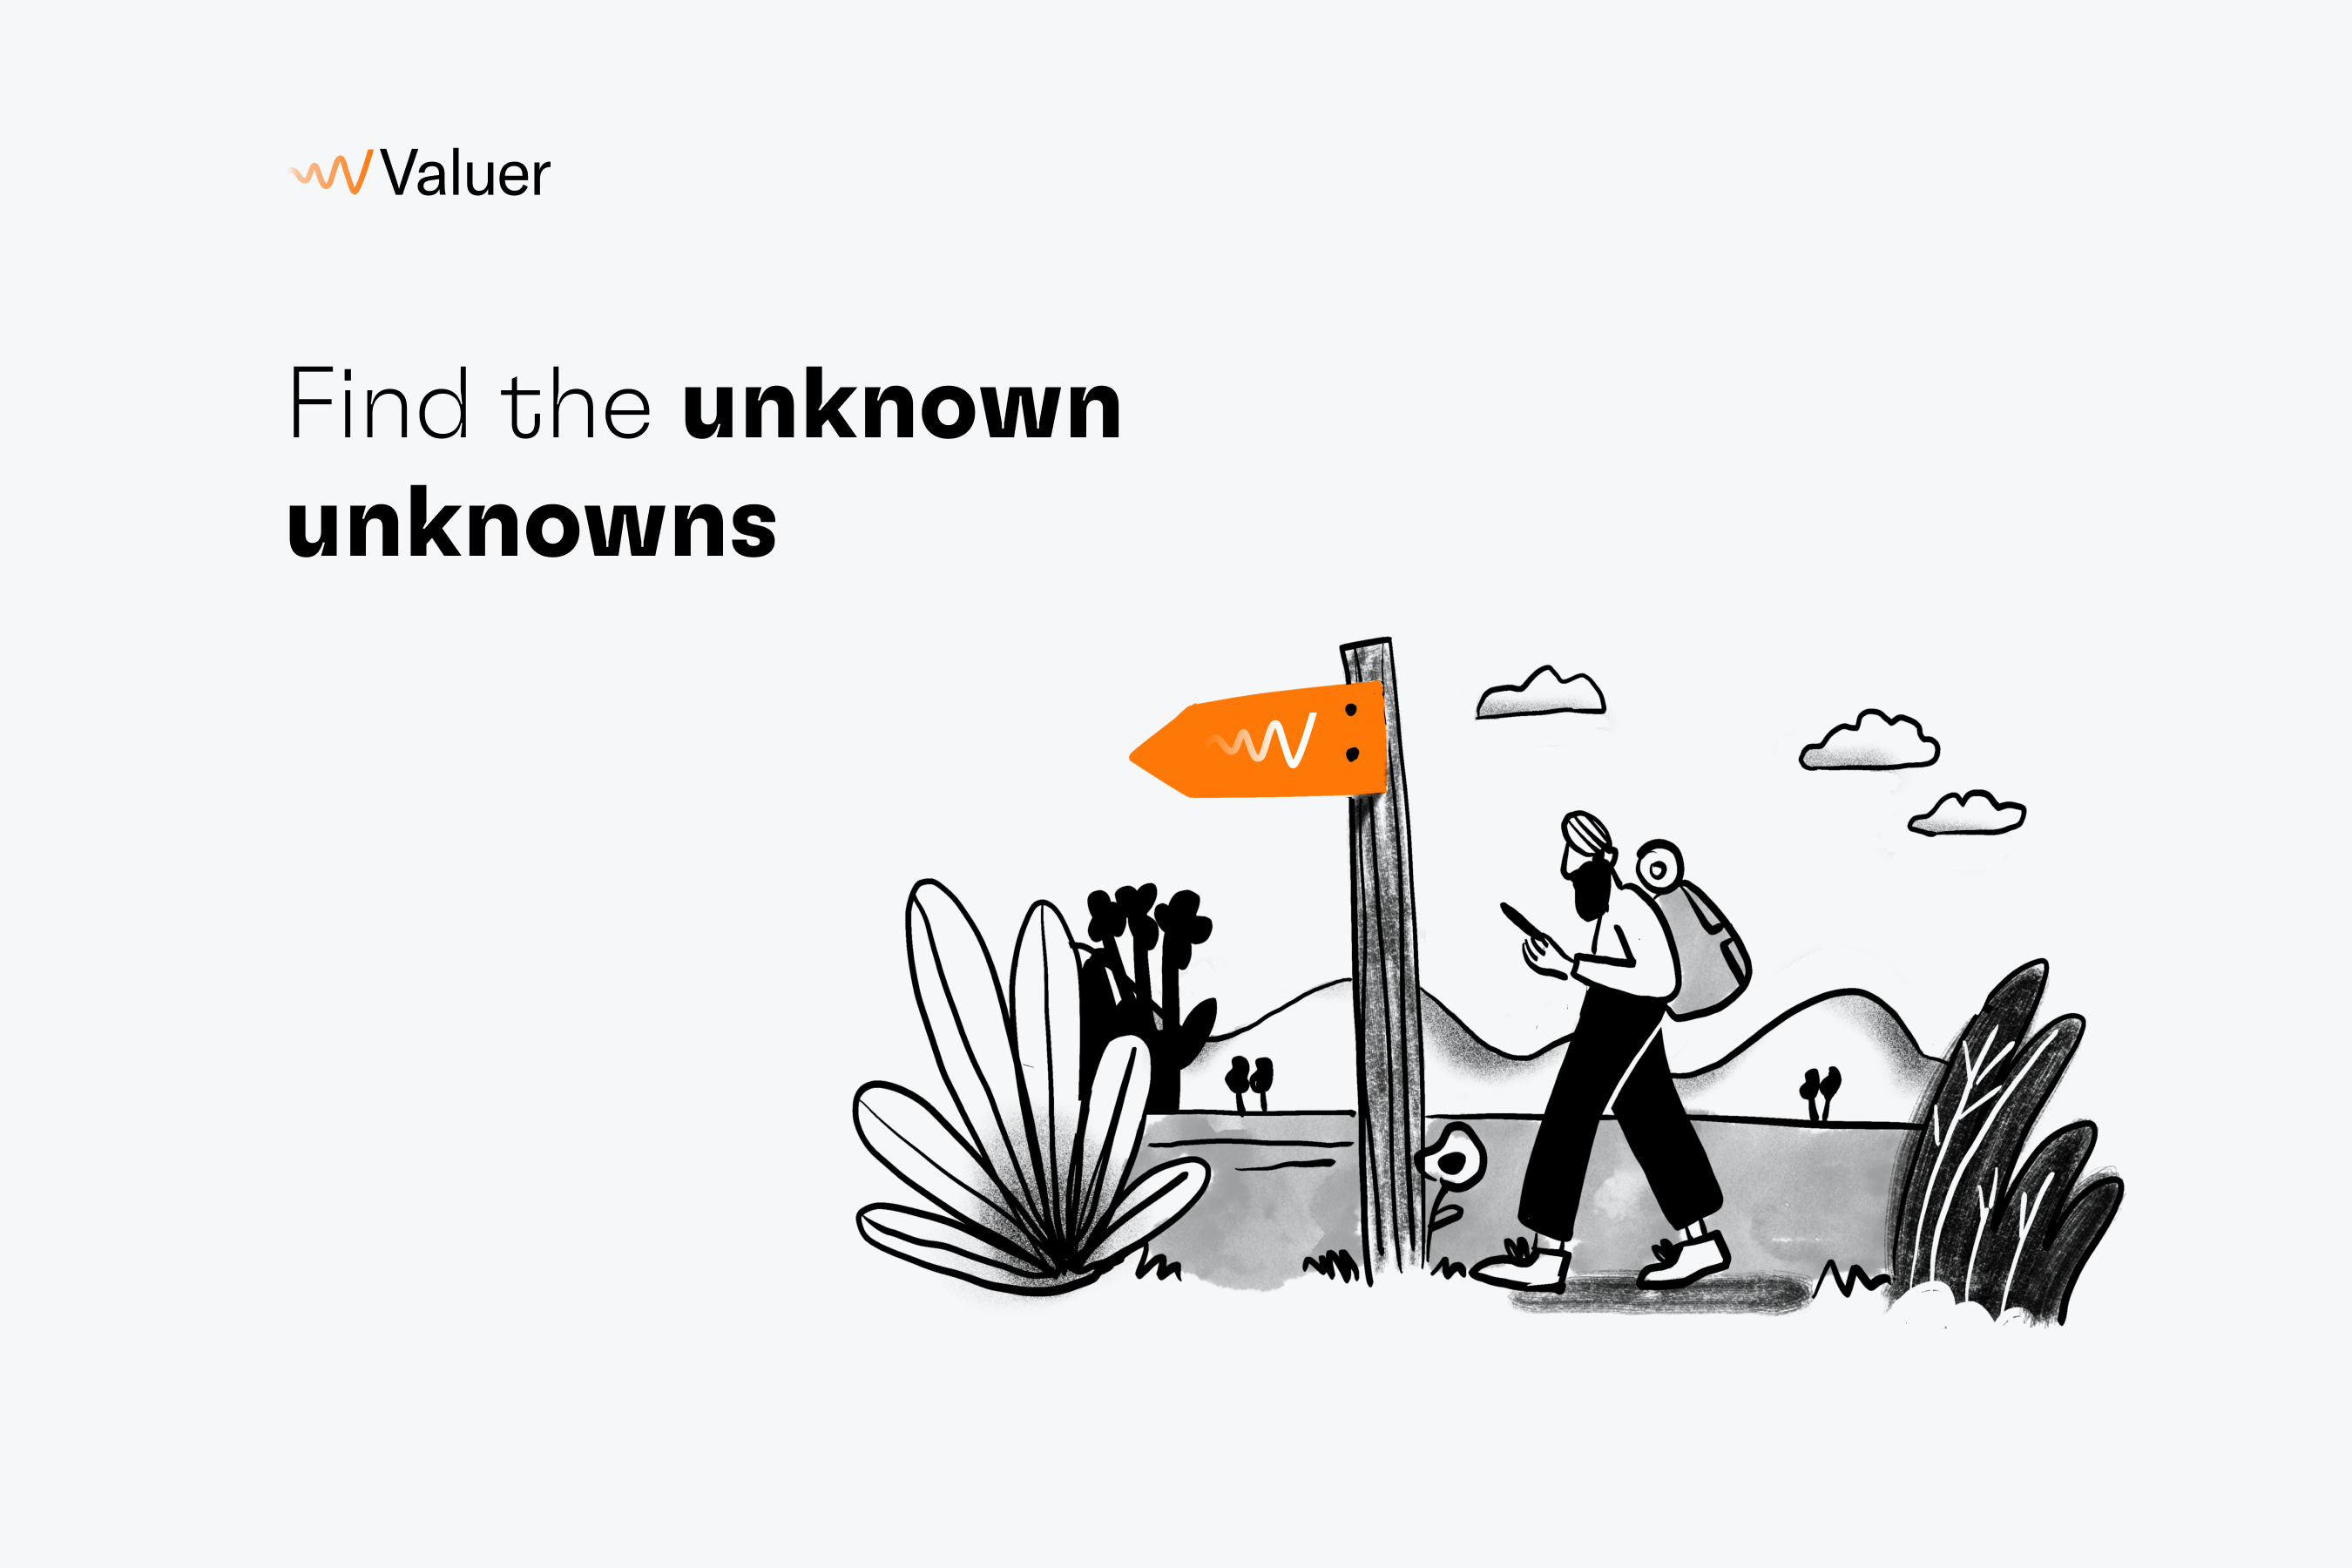 Find the unknown unknowns